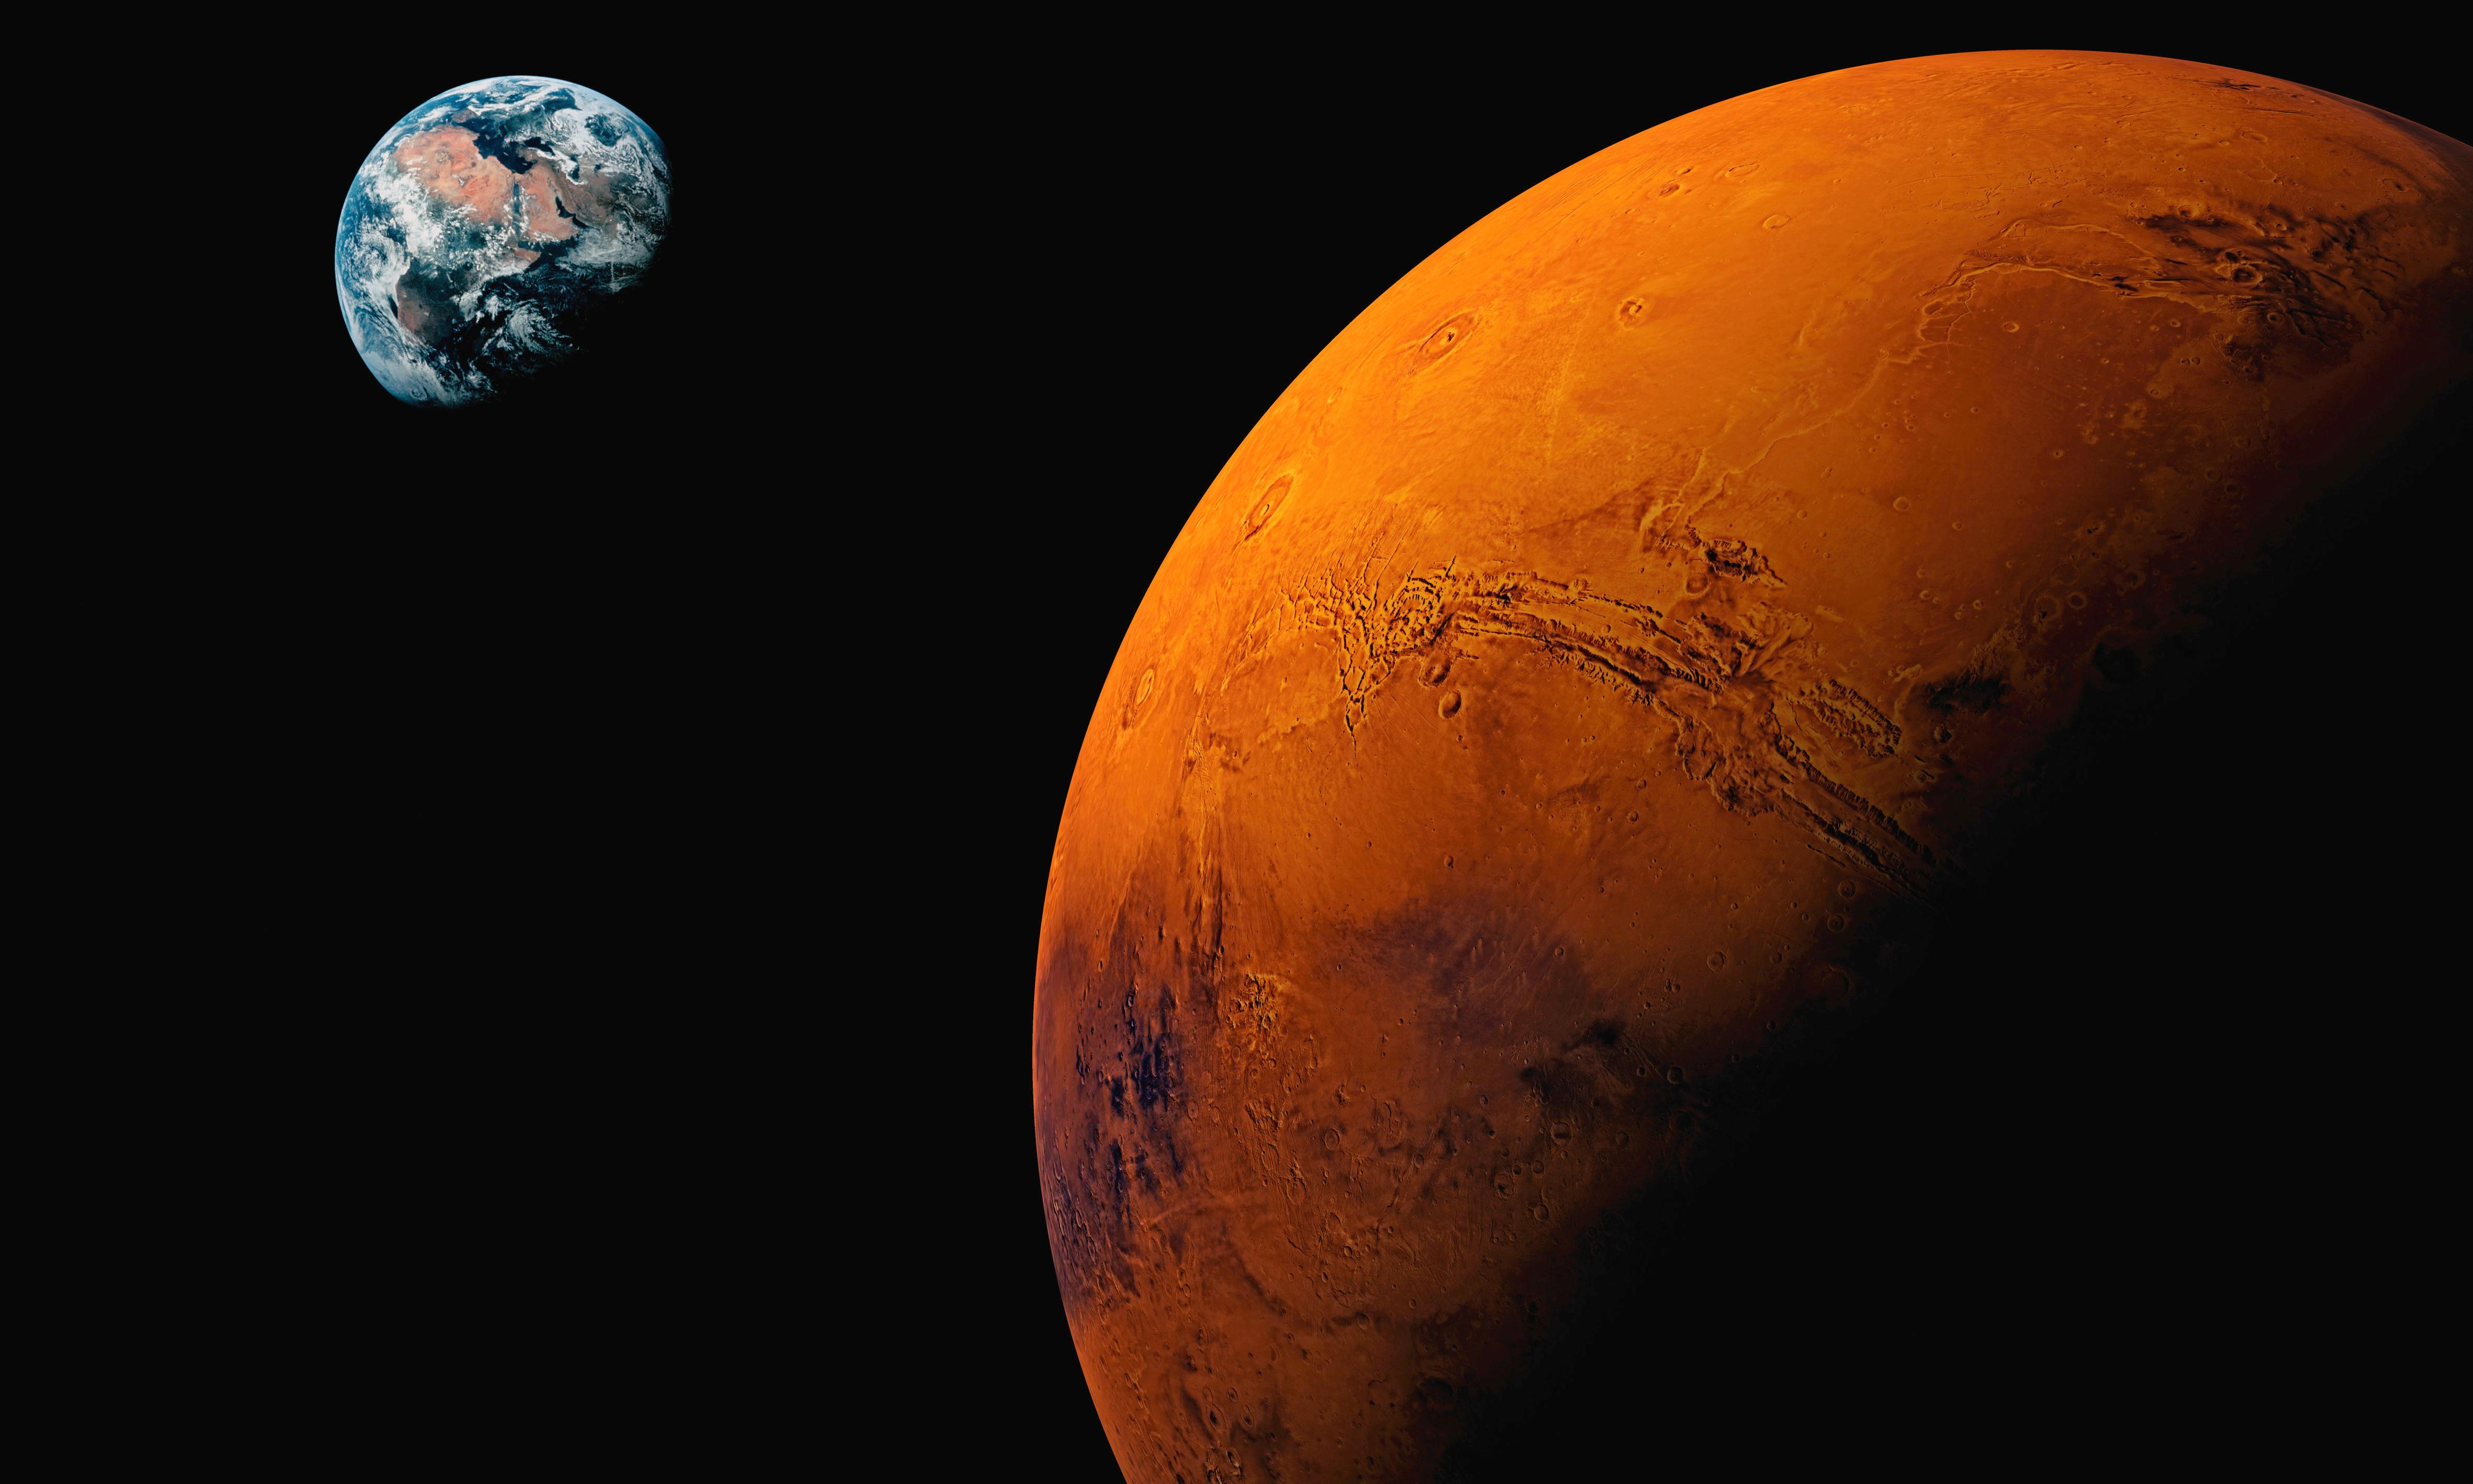 Possible 'marsquake' detected for first time on red planet